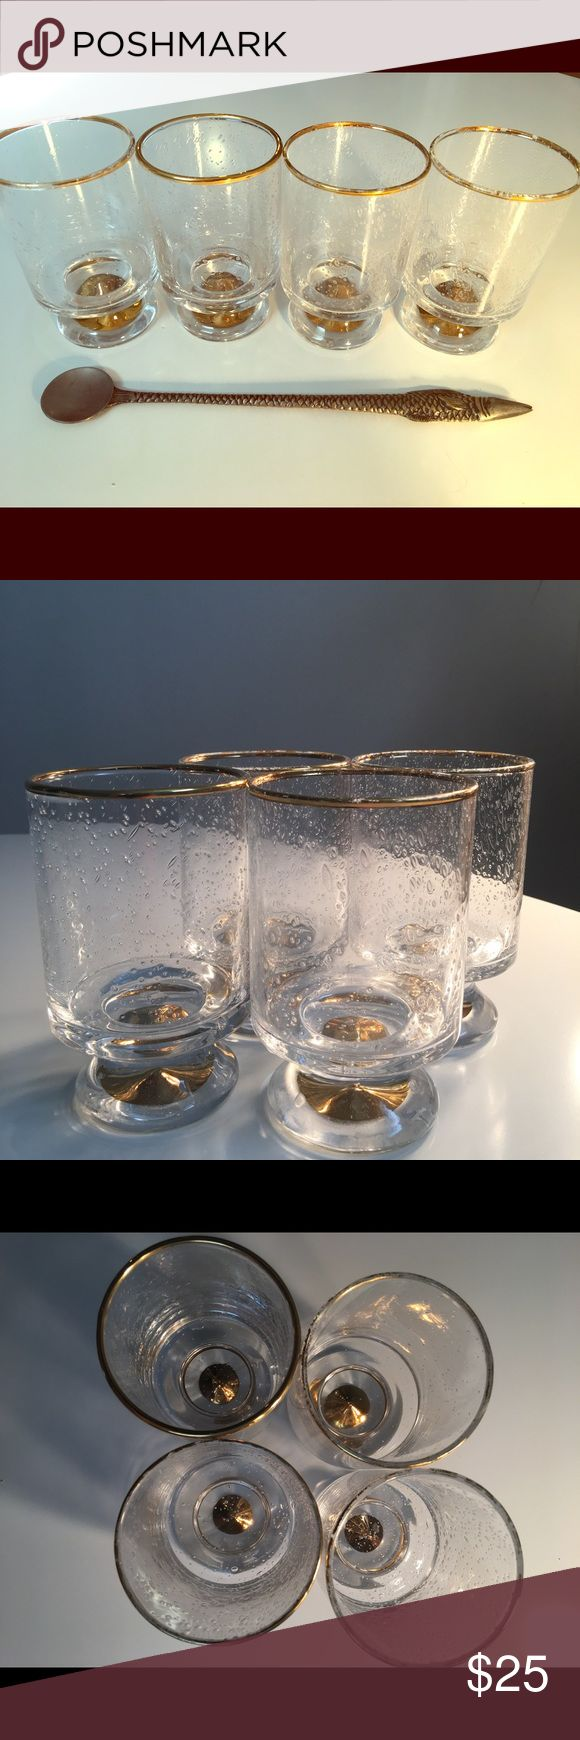 Set of 4 anthropology cocktail glasses &free gift 4 gold leaf anthropologist glasses. Some of gold leaf has rubbed off on rim. See pictures. Eclectic luxury chic. Comes with free anthropology fish cocktail stirrer. Anthropologie Other